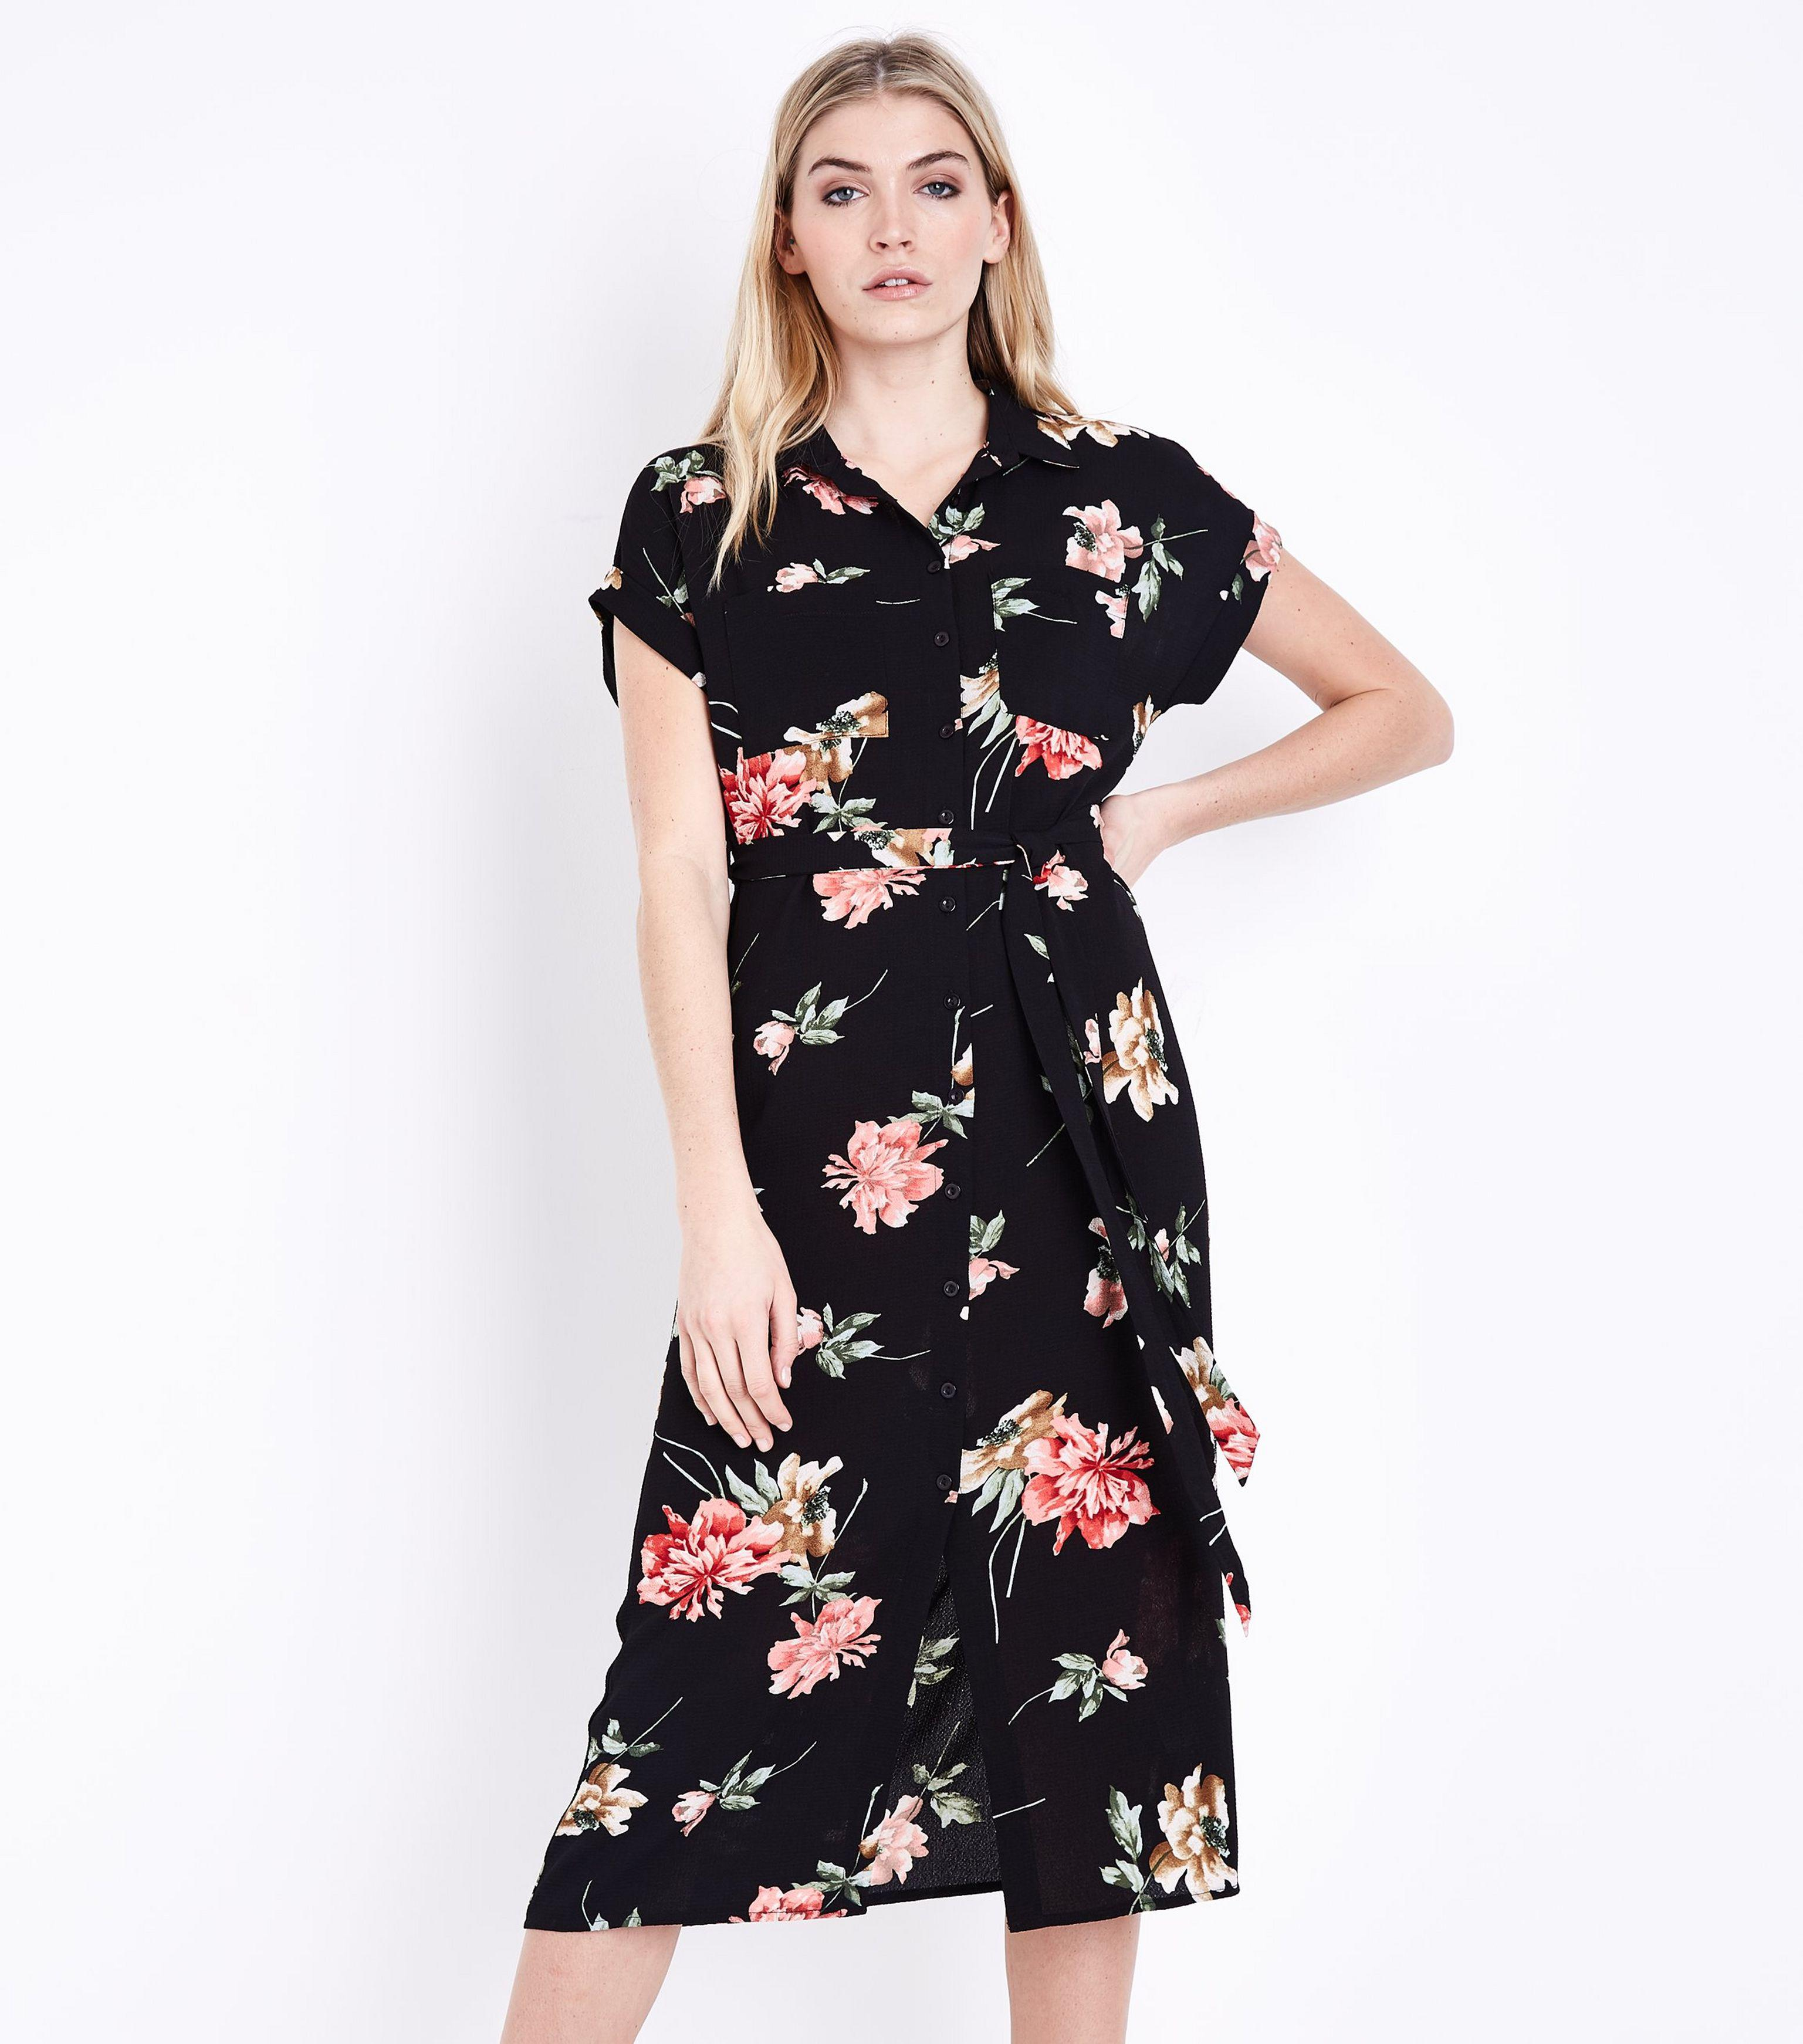 dff7e54255 New Look Black Floral Short Sleeve Midi Shirt Dress in Black - Lyst